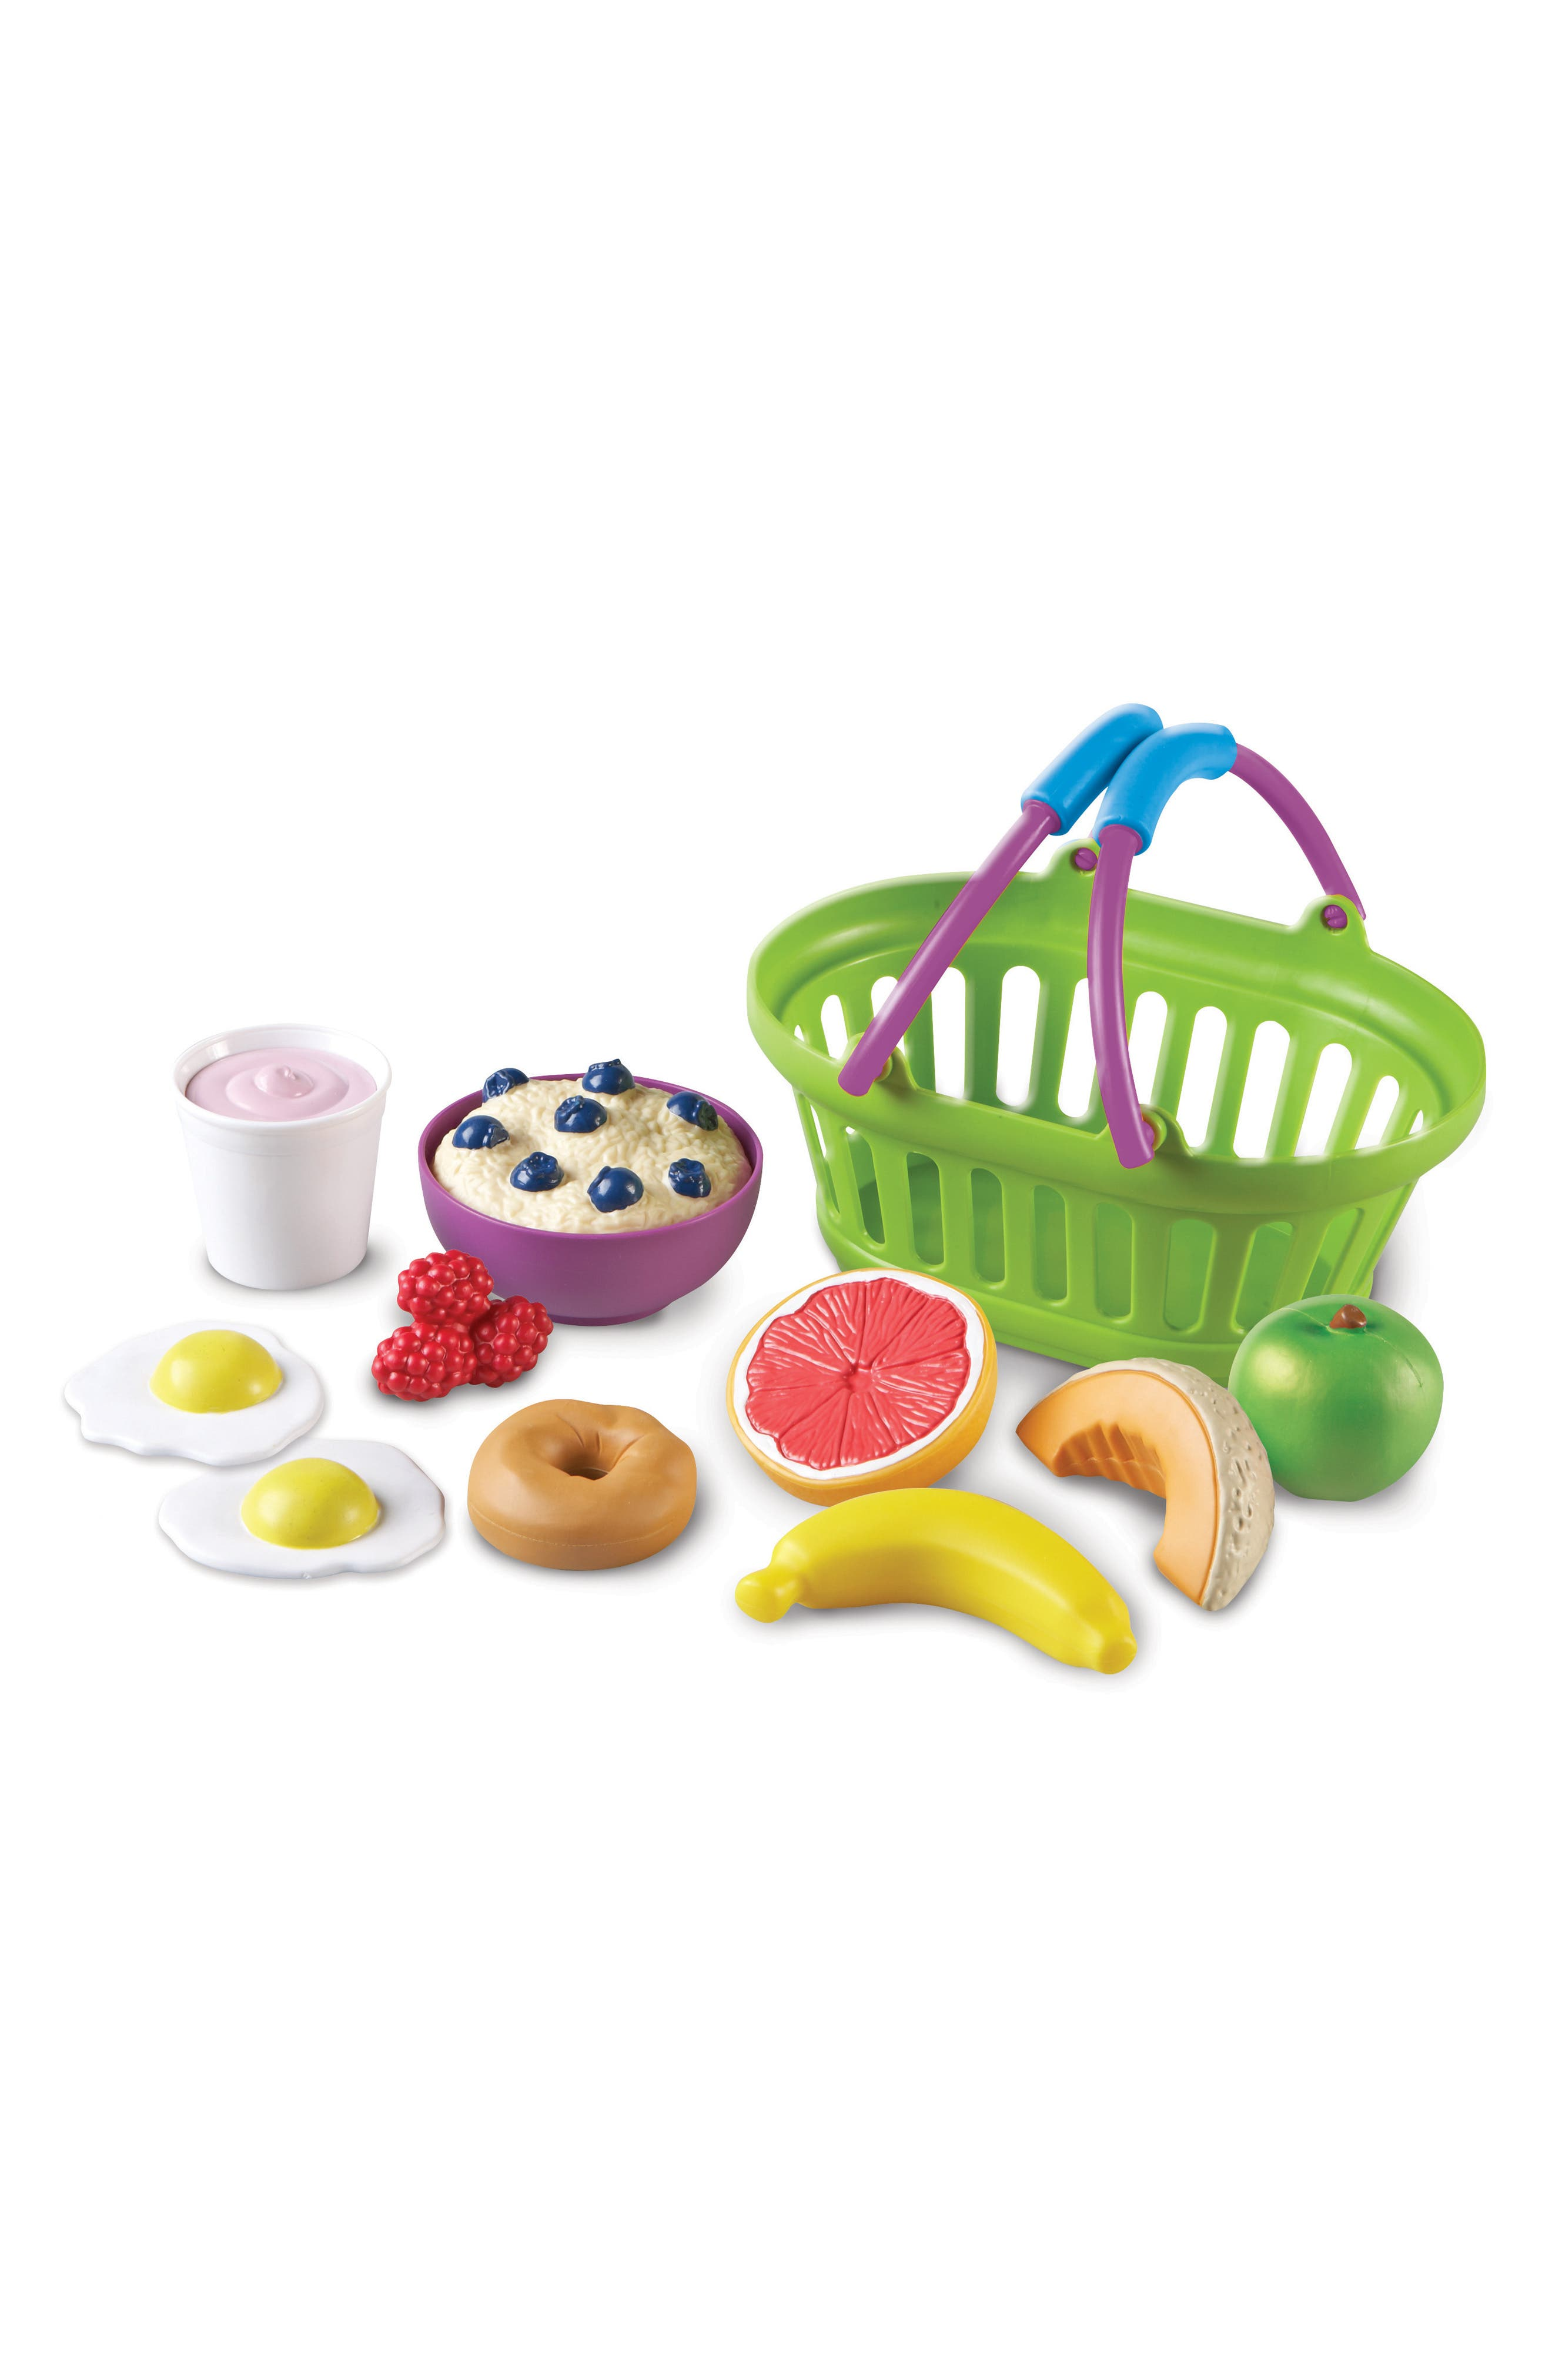 New Sprouts<sup>®</sup> Healthy Breakfast Play Set,                             Main thumbnail 1, color,                             960